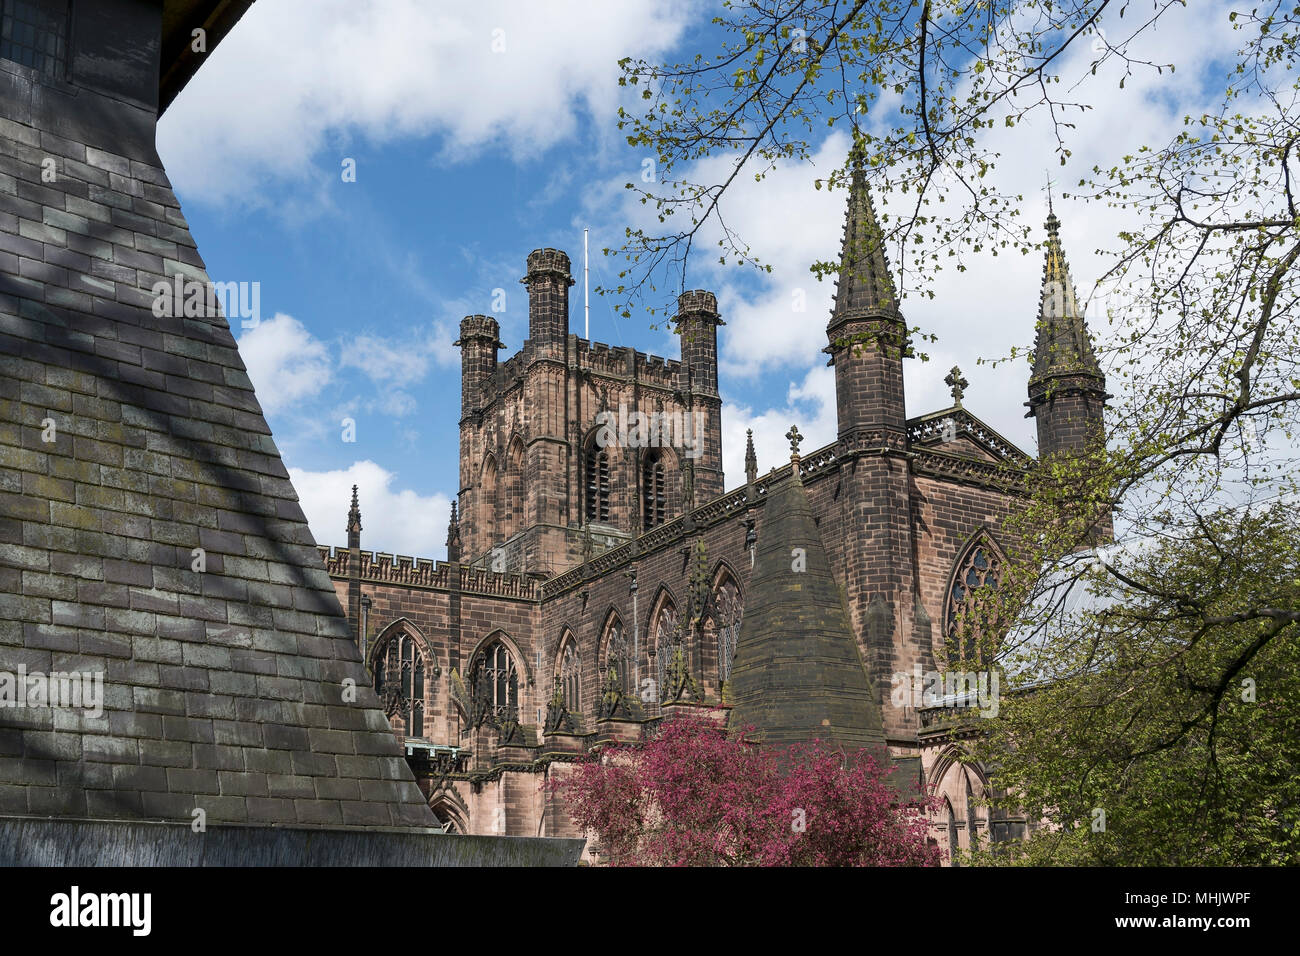 Chester Cathedral viewed from the Walls and Bell Tower - Stock Image